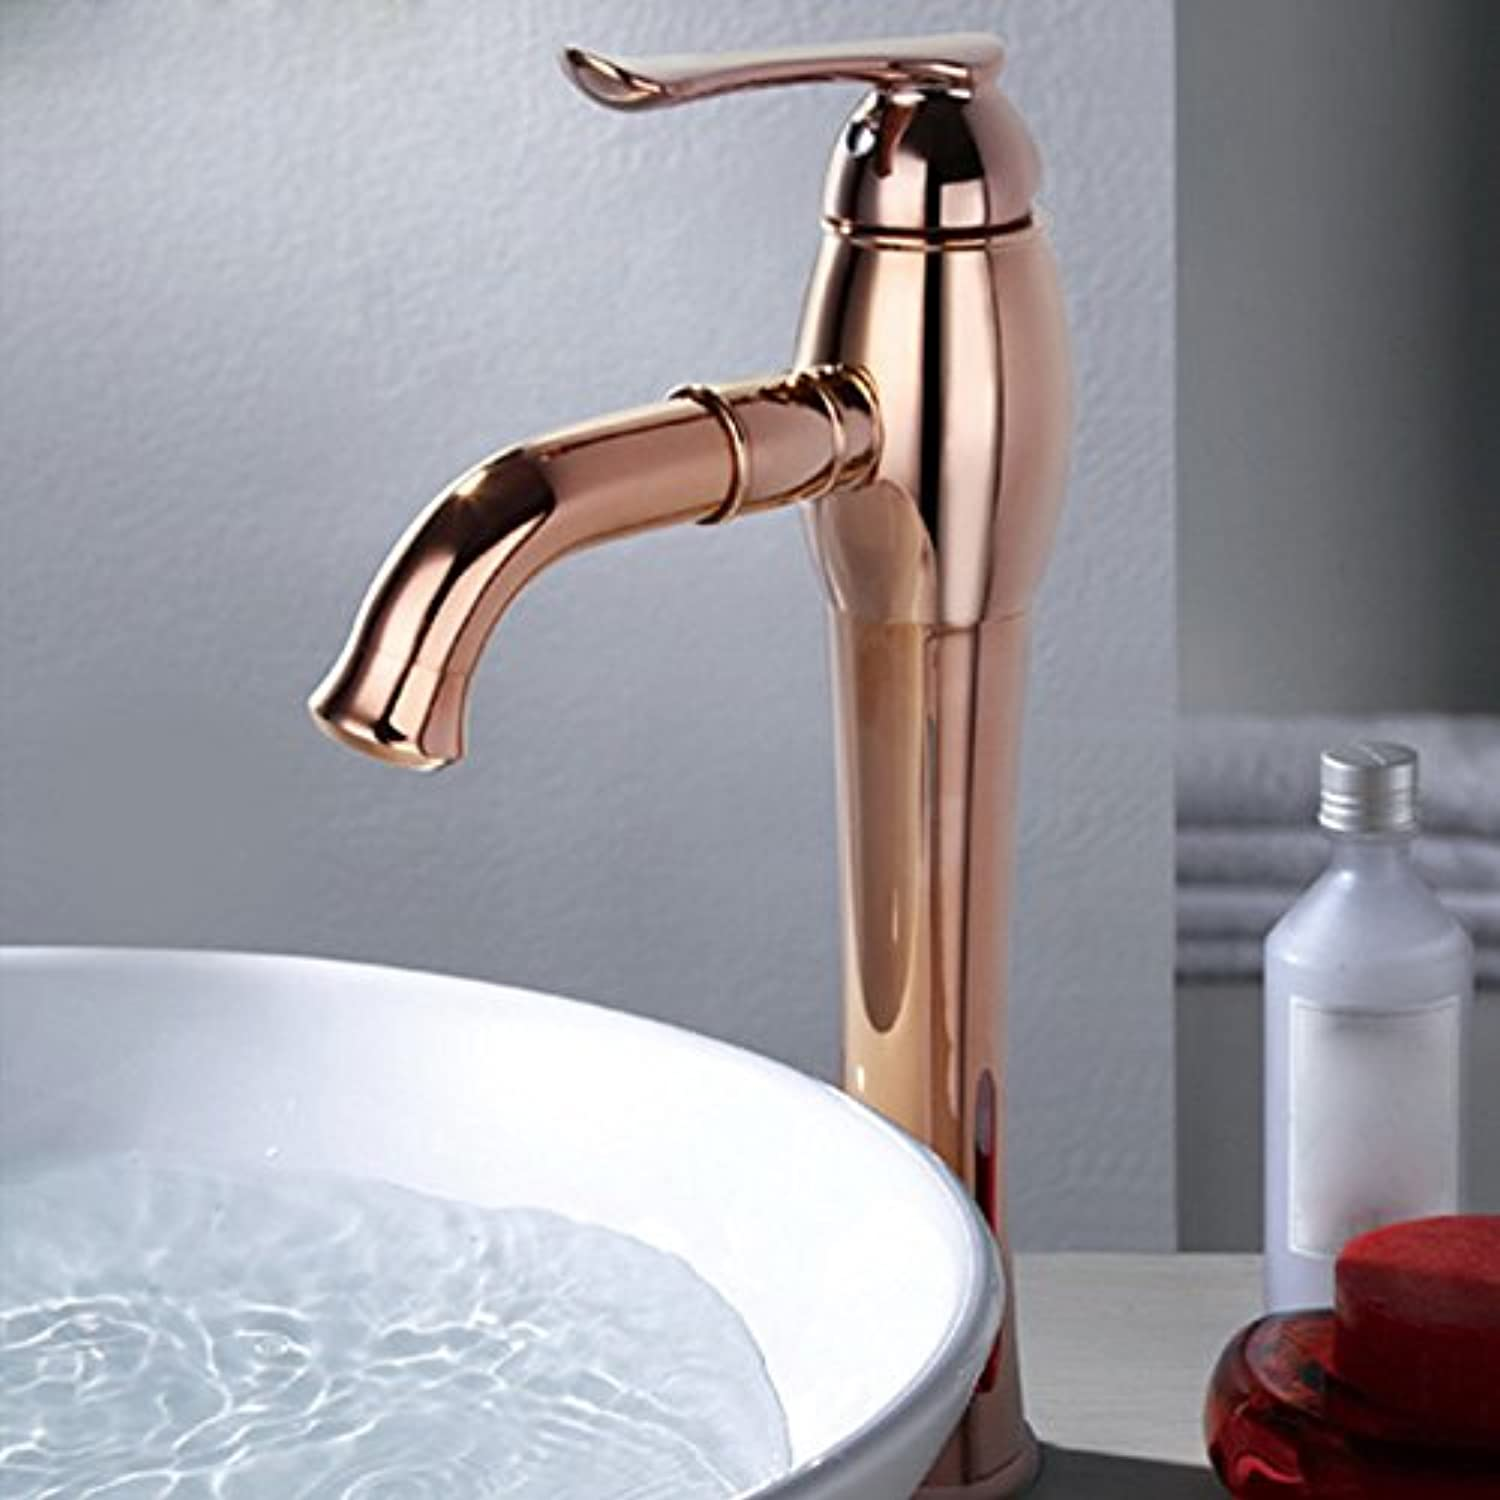 LHbox Basin Mixer Tap Bathroom Sink Faucet 0Y pure copper hot and cold basin faucet, pink gold